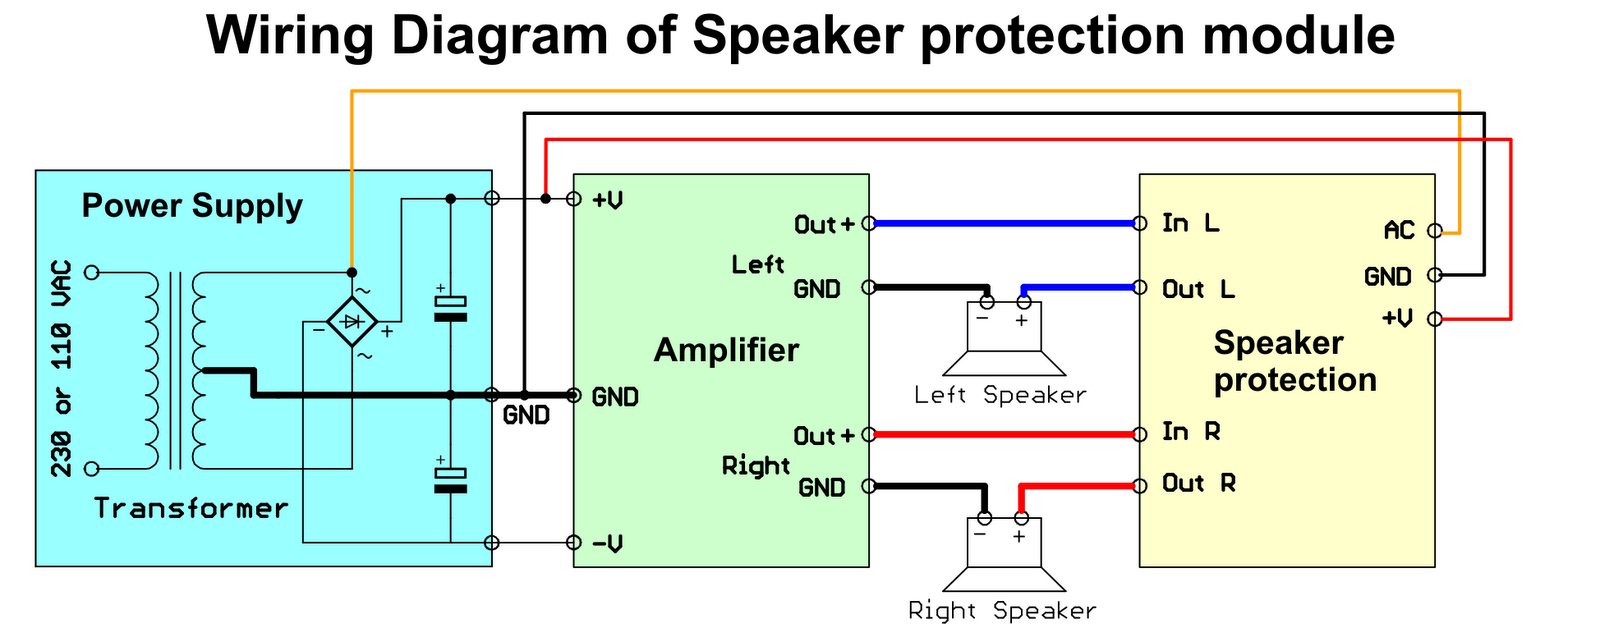 Diyfan Speaker Protection With Upc1237 Loudspeaker Wiring Diagram Bellow Is A How To Connect Module An Amplifier